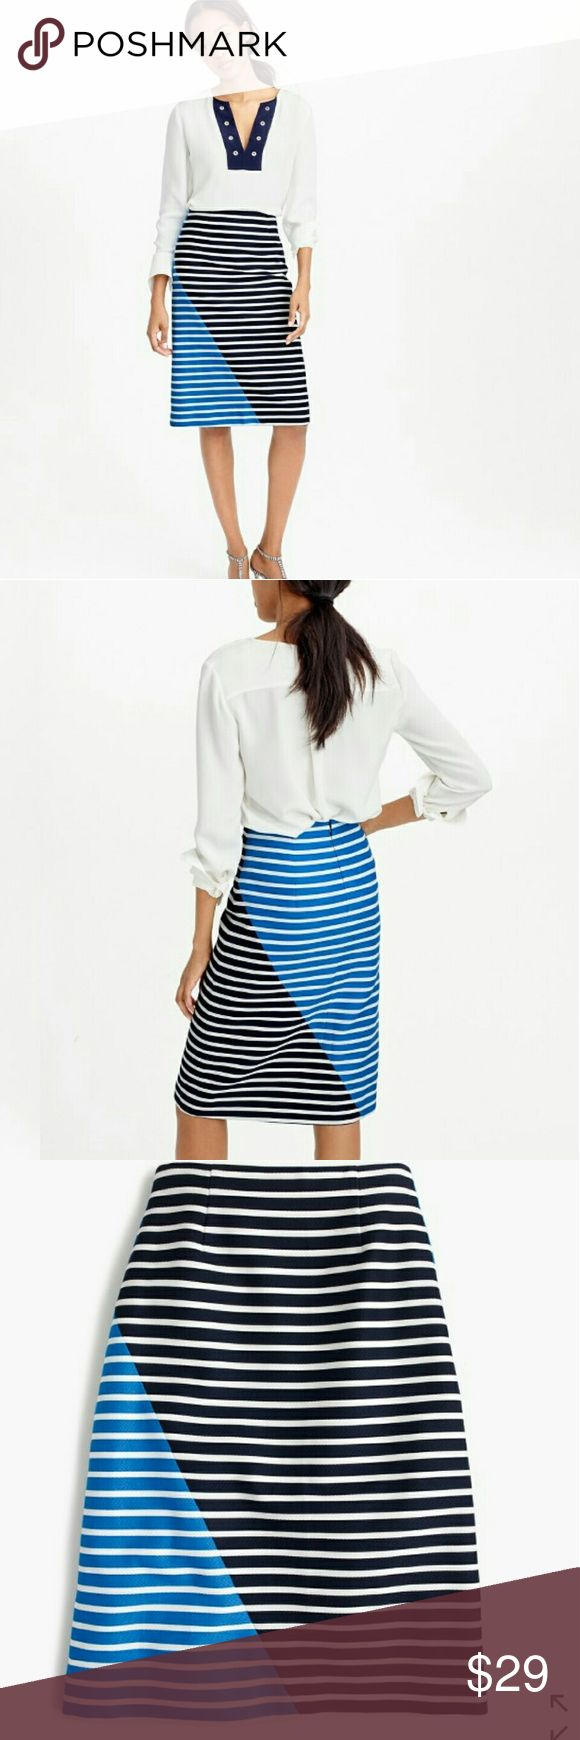 J.CREW Color-Block Stripes Pencil Skirt J.CREW Color-Block Stripes Pencil Skirt. Great Condition! 100% Cotton.  *pics from Jcrew.com. J. Crew Skirts Pencil